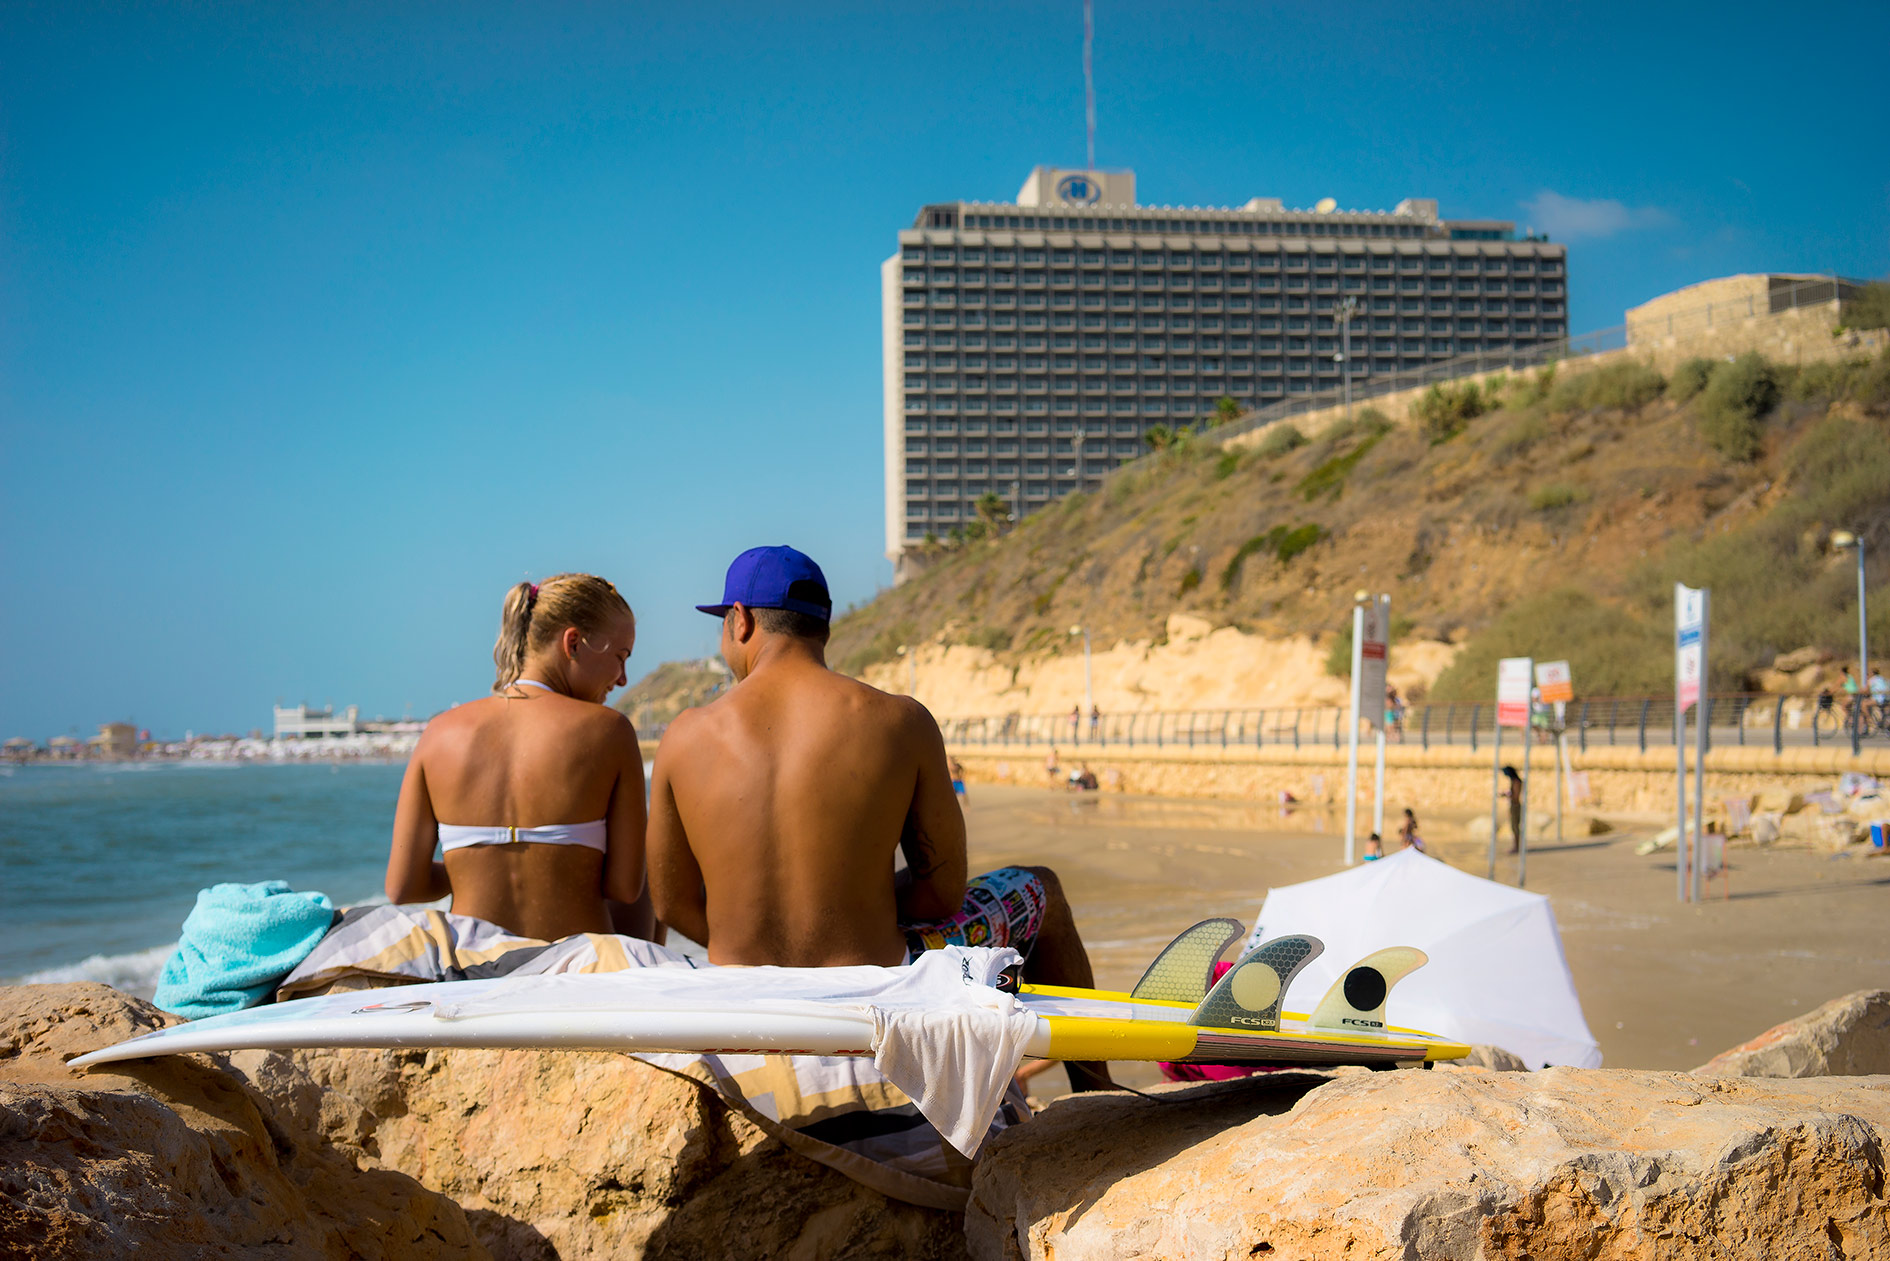 Ido Biran, Tel Aviv beach, couple, surfboard